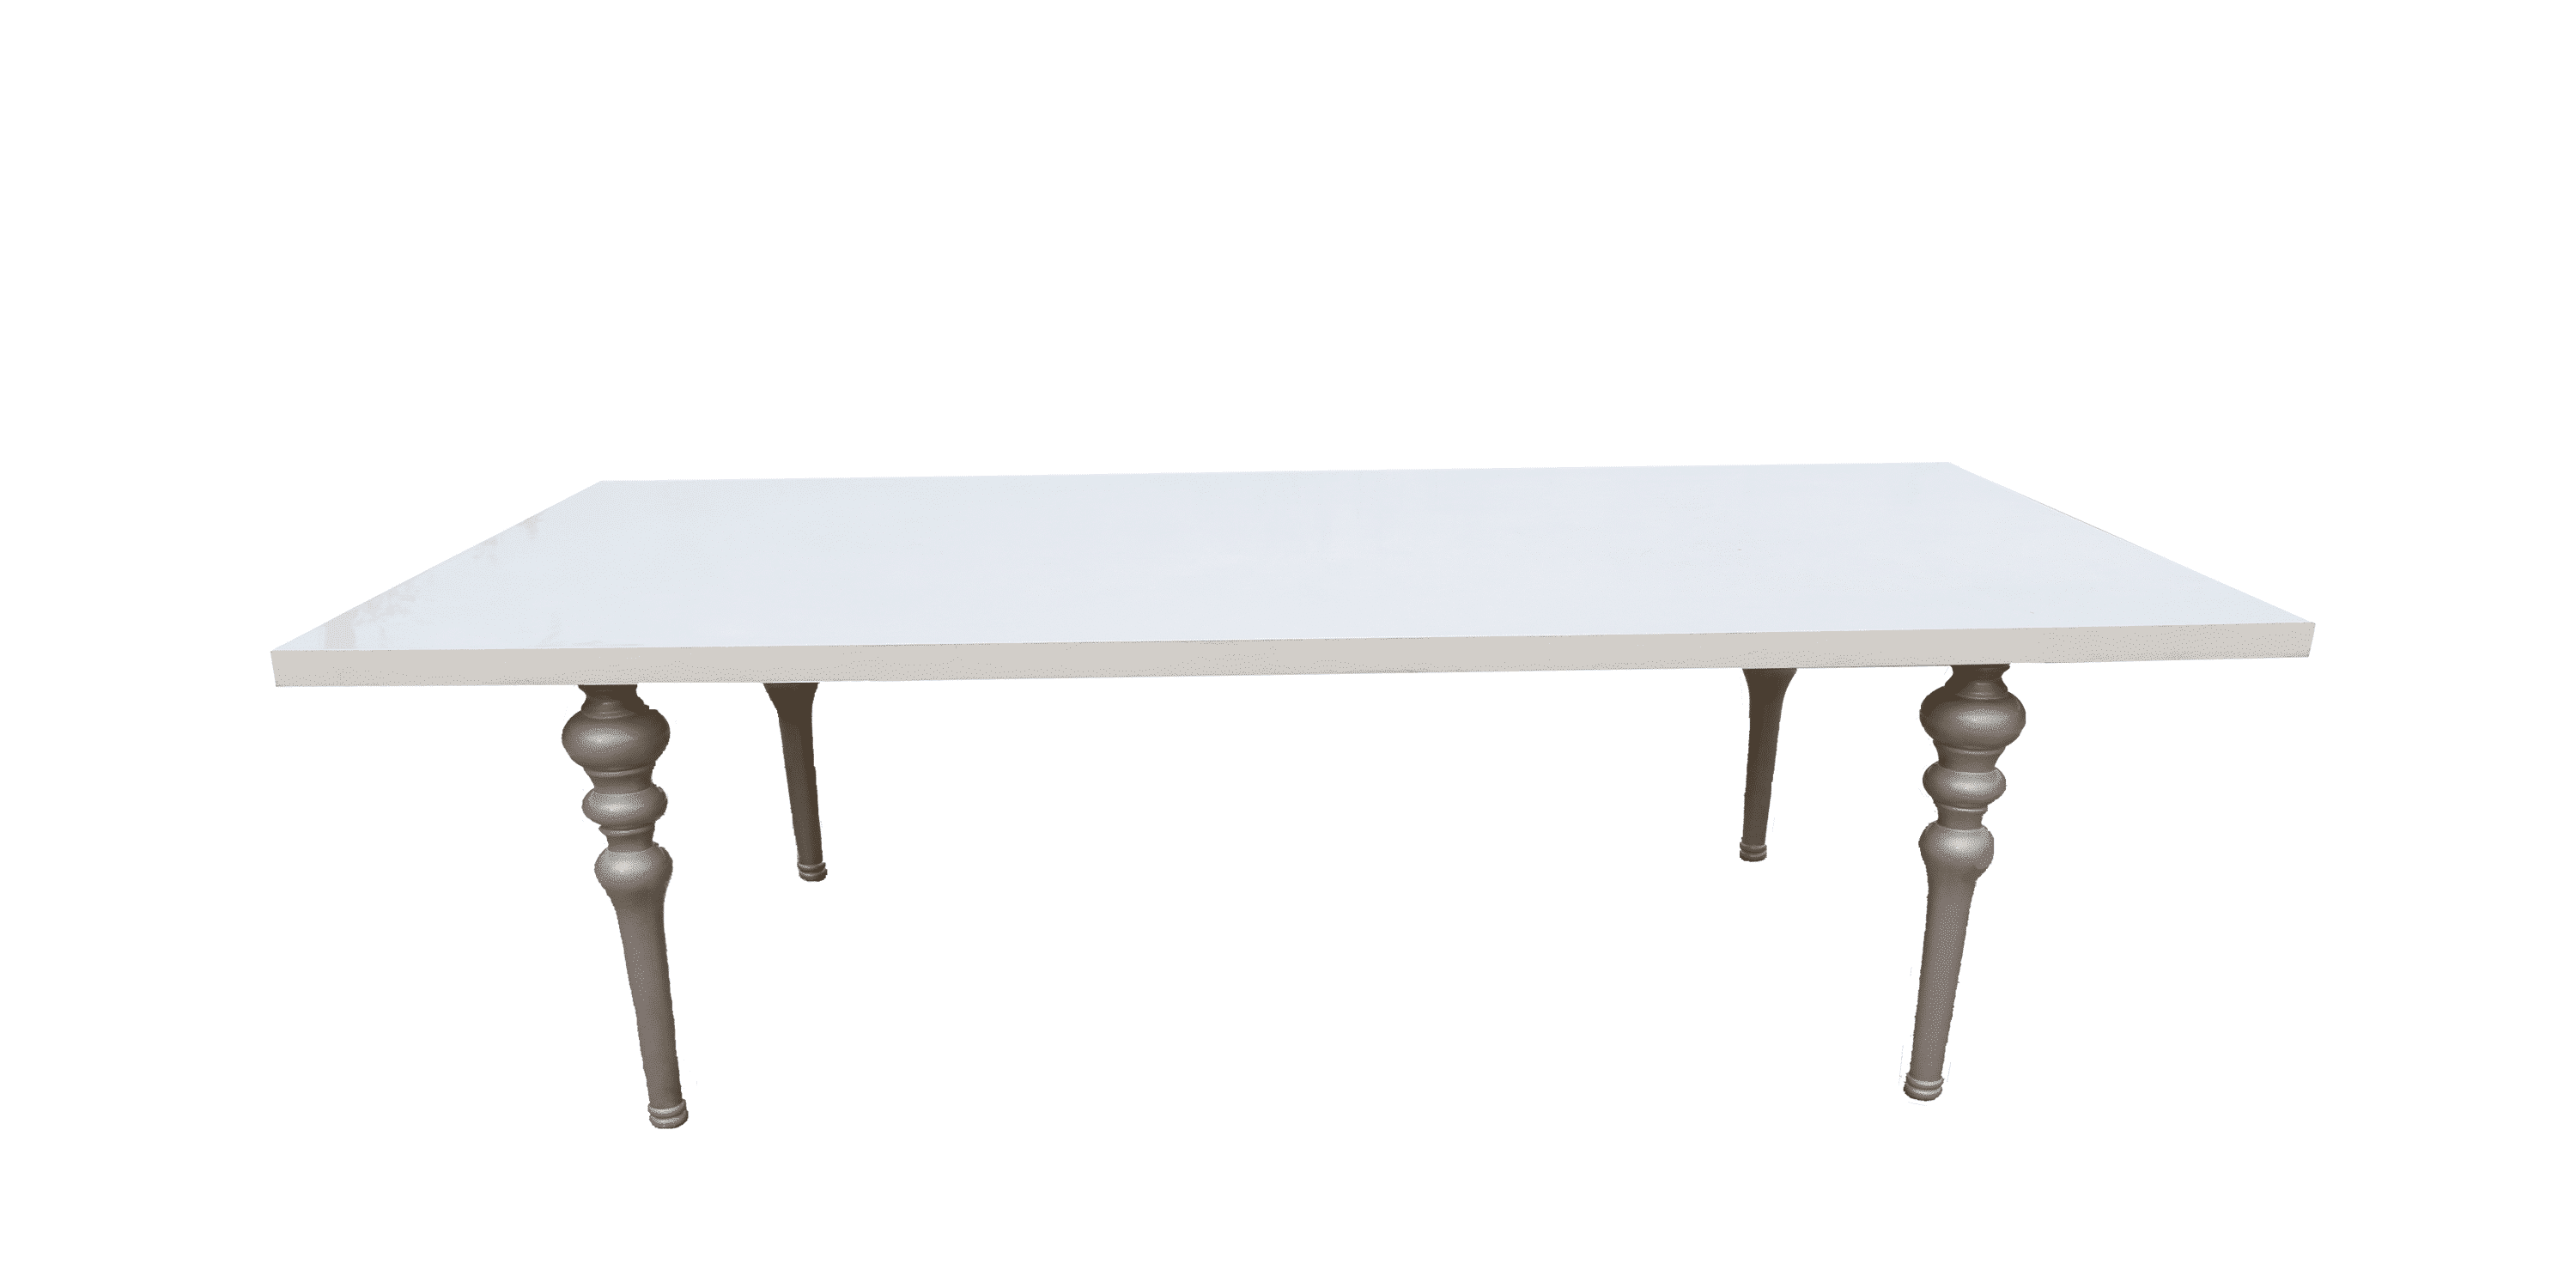 Rental Chairs Tables Dinnerware Lounge Furniture Luxe